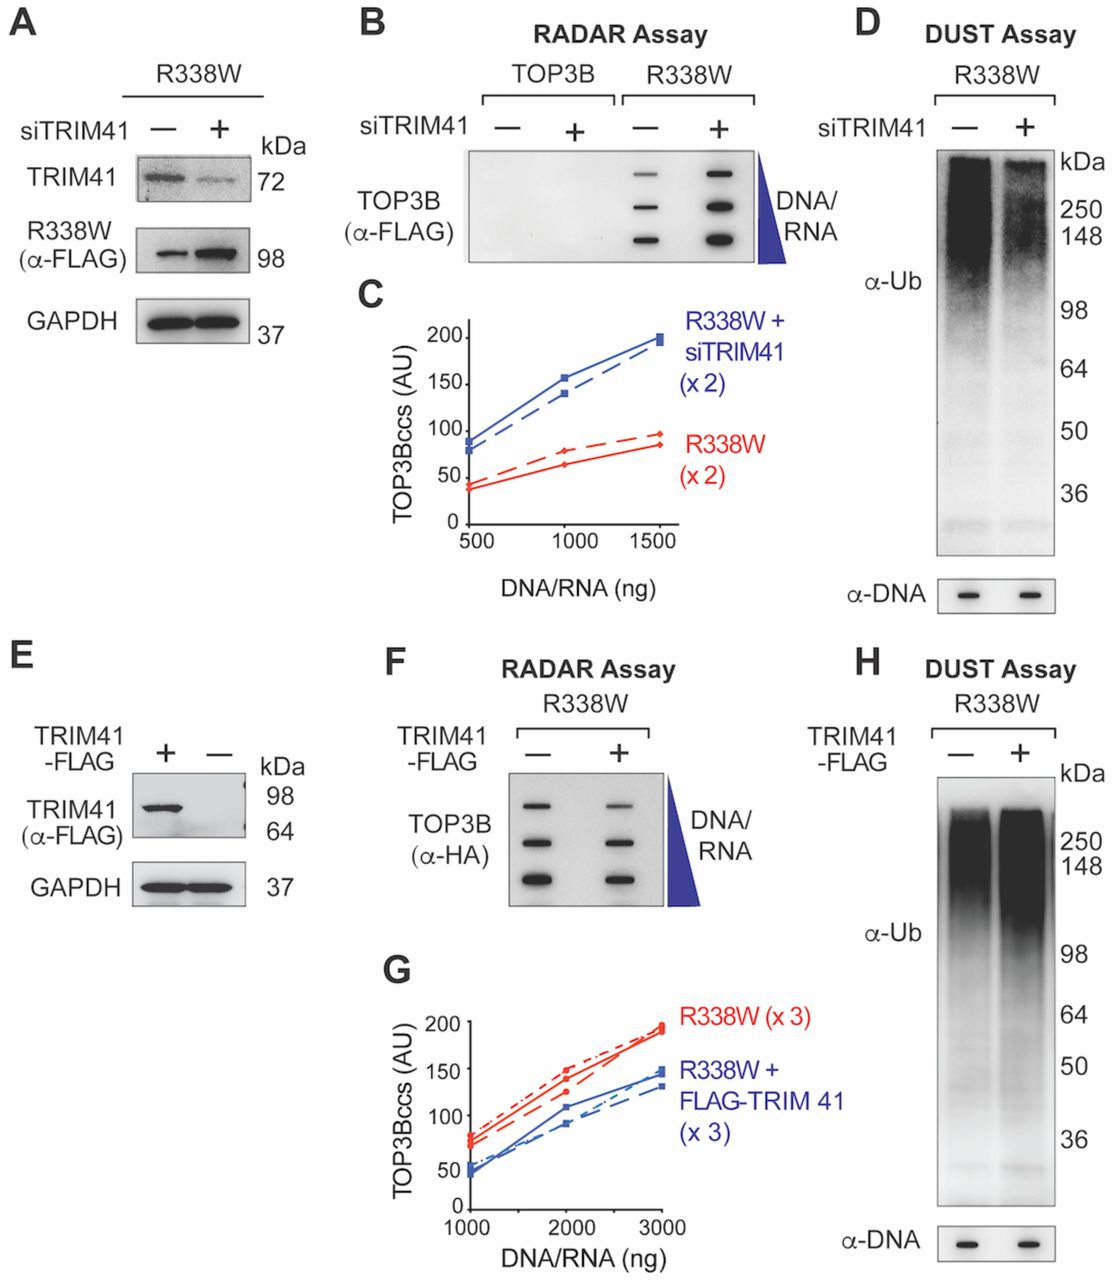 TRIM41 acts as Ubiquitin Ligase for TOP3Bccs and Promotes the Repair of TOP3Bccs (A) Immunoblots showing TRIM41 and R338W TOP3B expression after TRIM41 down-regulation (GAPDH as loading control). HCT116 cells were either transfected with FLAG-tagged R338W TOP3B plasmid construct alone or co-transfected with siTRIM41construct for 72 h. (B) HCT116 cells were transfected with FLAG-tagged wild-type or R338W TOP3Bs or co-transfected with siTRIM41construct for 72 h. Cells were harvested and nucleic acids and protein-nucleic acid adducts isolated by RADAR assay. TOP3Bcc were detected with anti-FLAG antibody. The figure is representative of two independent experiments. (C) Quantitation of TOP3Bccs in 2 independent RADAR assays as shown in panel B. (D) HCT116 cells were transfected with FLAG-tagged R338W TOP3B alone or with siTRIM41construct. After 72 h, TOP3Bcc ubiquitylation was detected by DUST assay. Samples were also subjected to slot-blotting and probed with anti-dsDNA antibody as loading control. (E) Immunoblot showing expression of TRIM41 with GAPDH as loading control. HCT116 cells transfected with FLAG-tagged TRIM41 for 48 h. (F) HCT116 cells were either transfected with HA-tagged R338W TOP3B plasmid construct alone or co-transfected with FLAG-tagged TRIM41 construct. After 48 h cells were harvested and nucleic acids and protein-nucleic acid adducts were isolated by RADAR assay. TOP3Bccs were detected using anti-HA antibody. The figure is representative of three independent experiments. (G) Quantitation of TOP3Bcc formation in 3 independent RADAR assays as shown in panel F. (H) HCT116 cells were either transfected with HA-tagged R338W TOP3B plasmid construct alone or co-transfected with FLAG-tagged TRIM41construct. After 48 h, TOP3Bcc ubiquitylation was detected by DUST assay. Samples were also subjected to slot-blotting and probing with anti-dsDNA antibody as loading control.